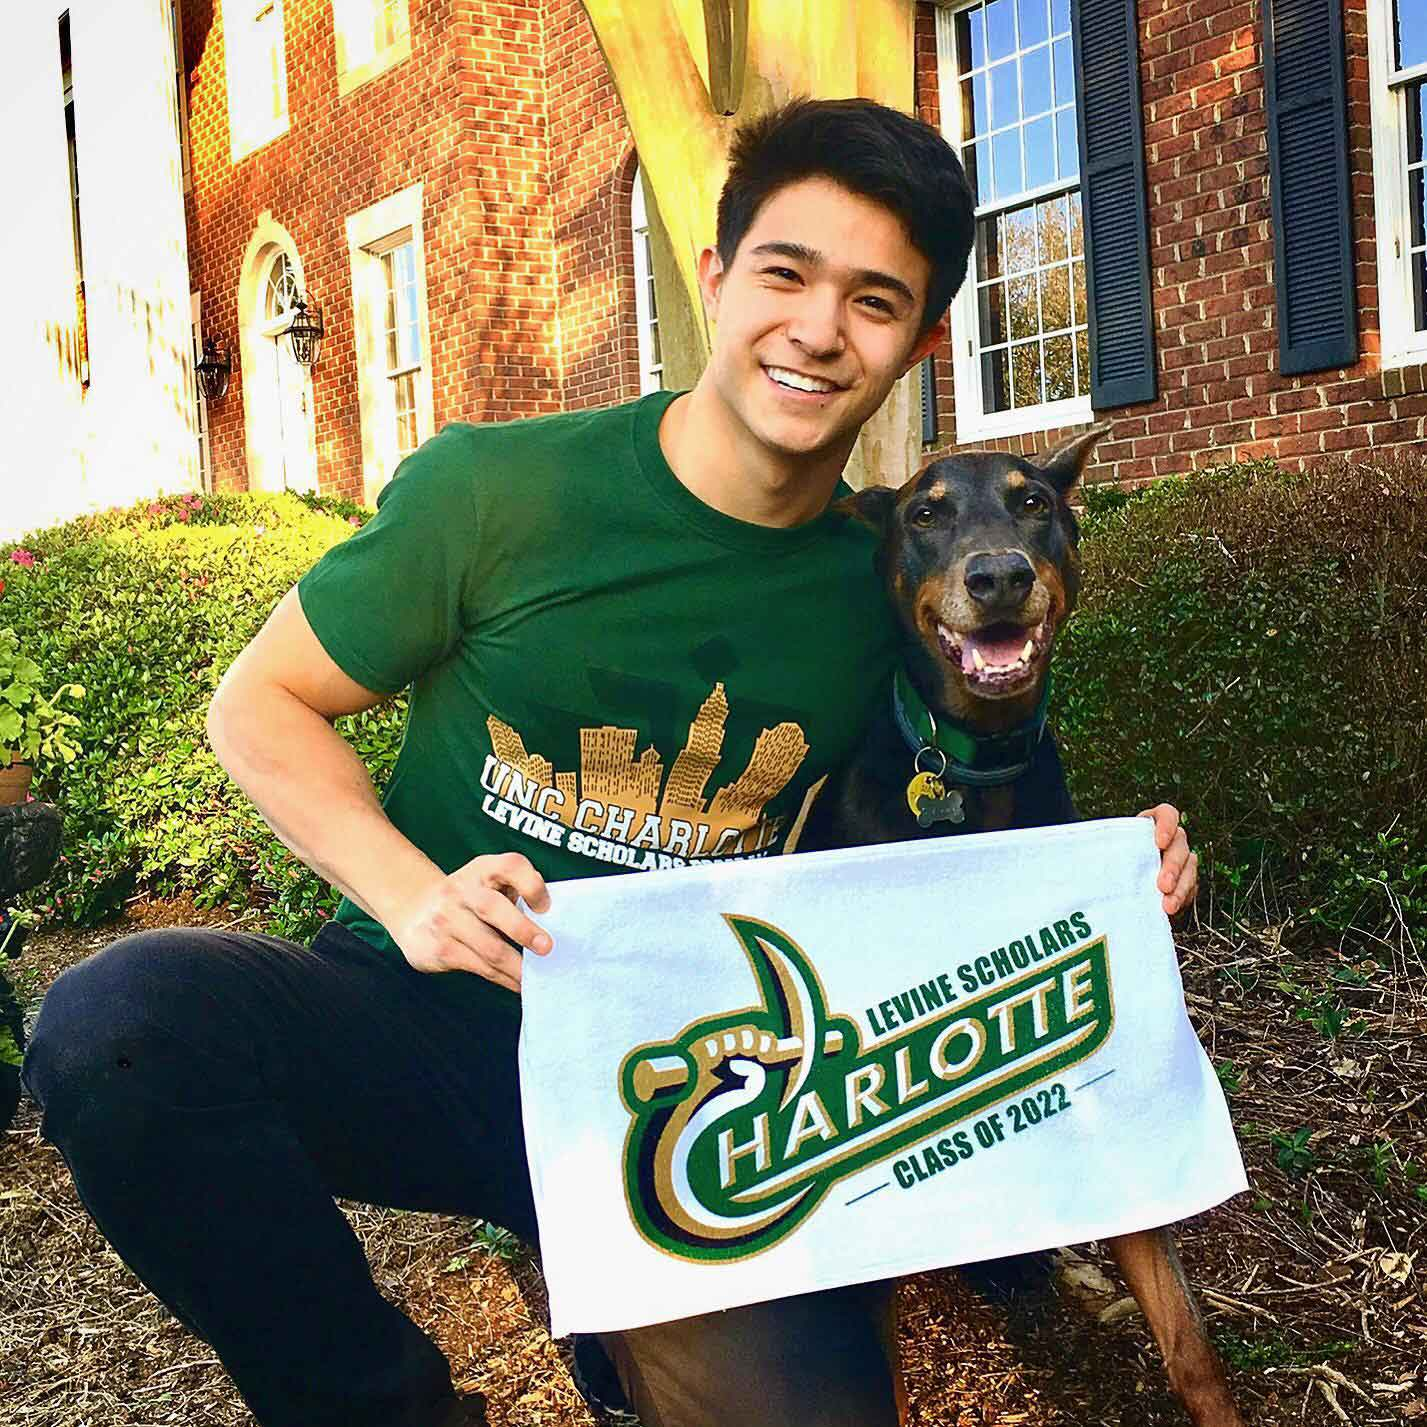 Unc Charlotte Academic Calendar 2022.Student Awarded Belk And Levine Scholarships At Uncc Stanly Community College North Carolina